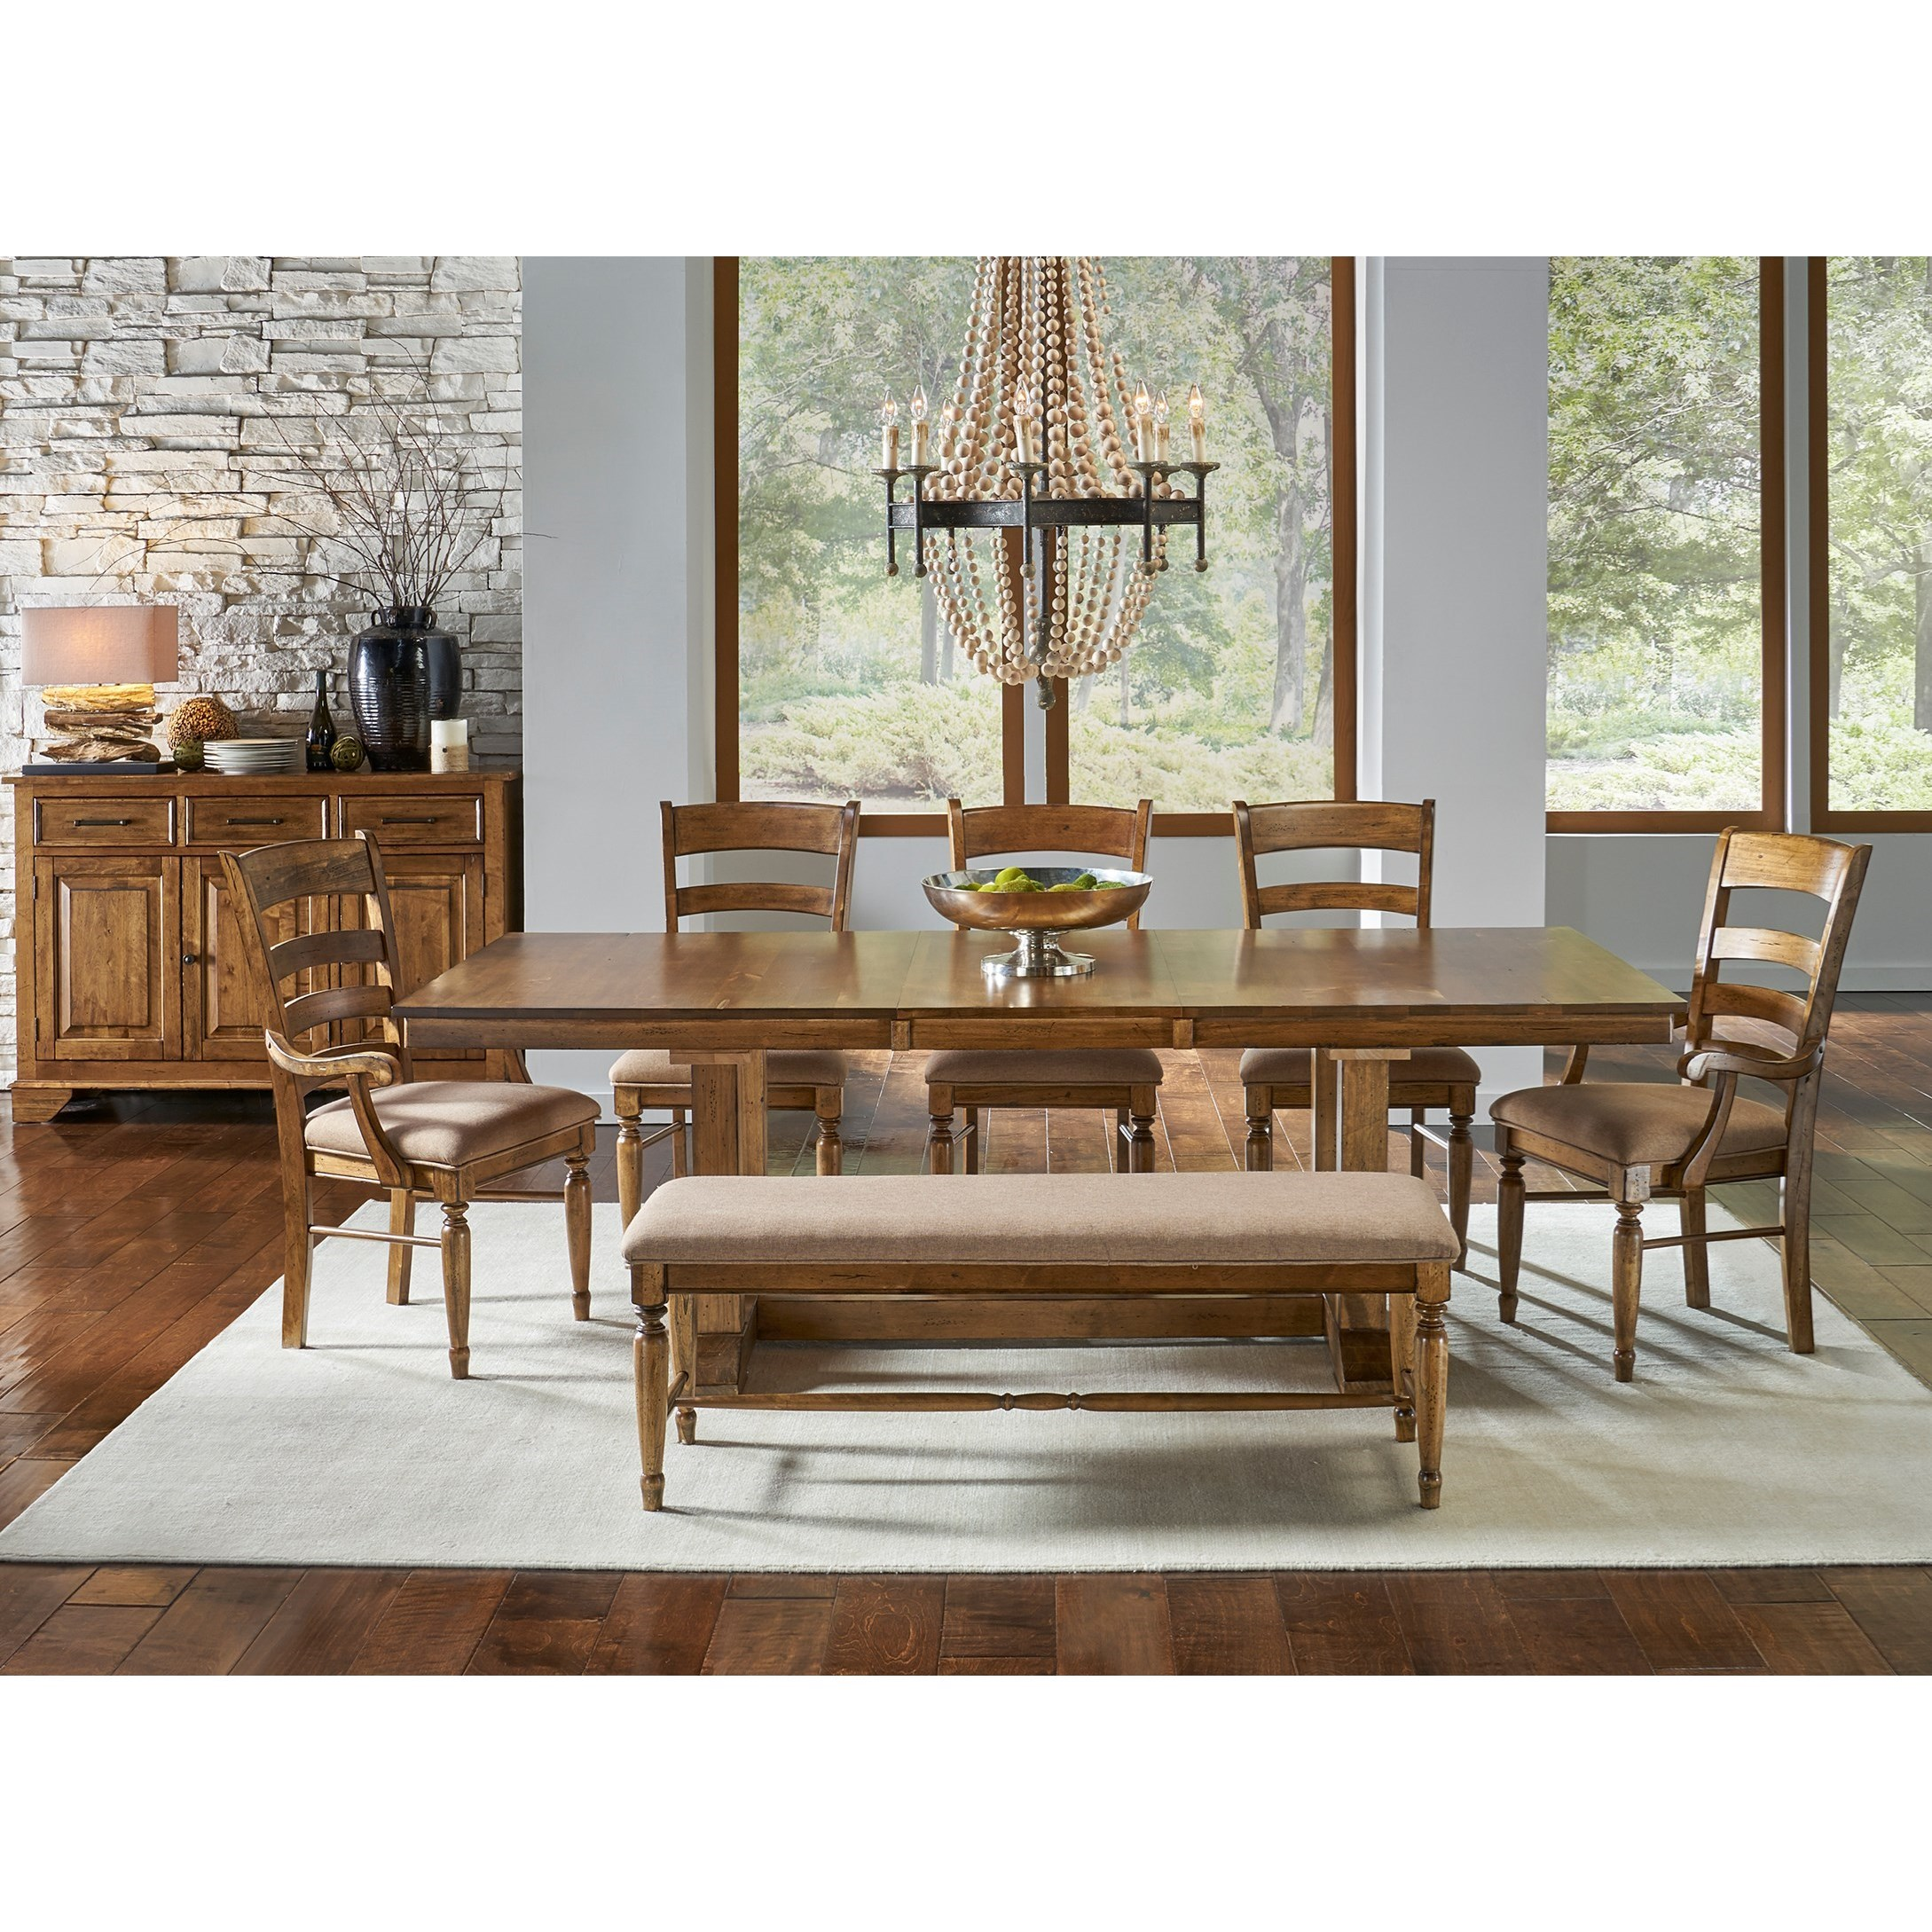 Aamerica bennett 7 piece trestle dining set with for 7 piece dining set with bench